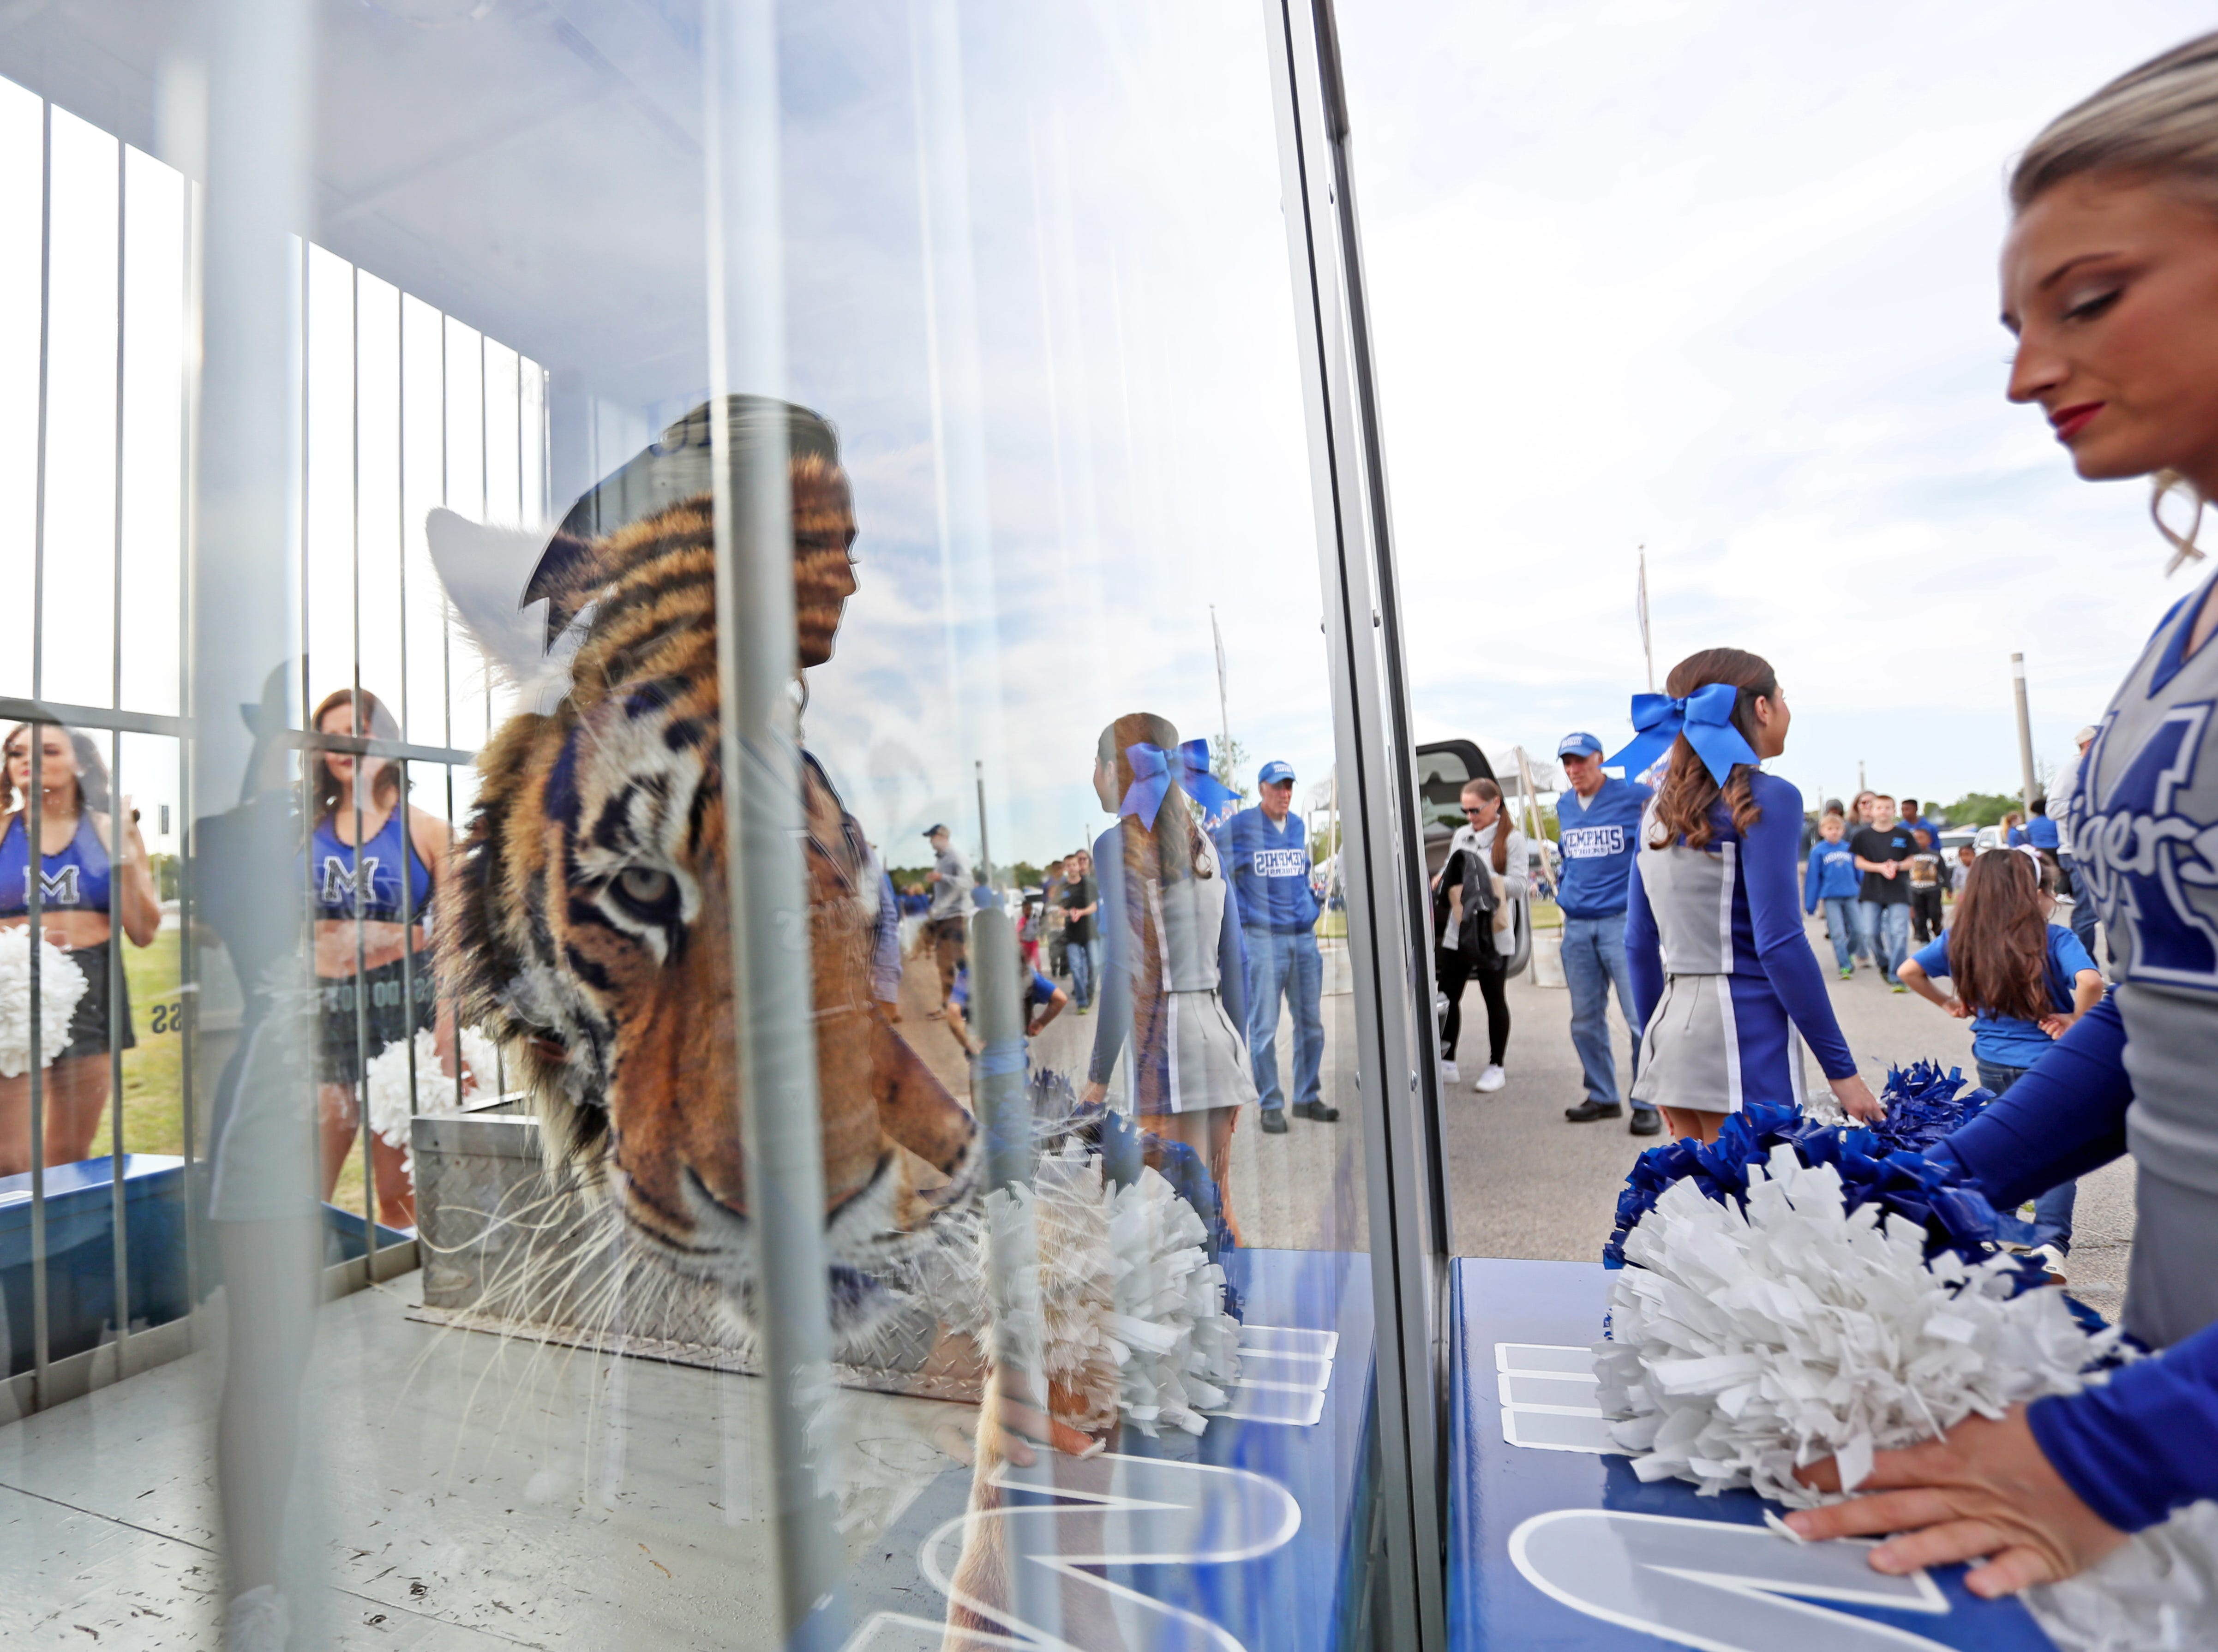 Tom the tiger circles in his cage before the Tigers 'Friday Night Stripes' spring game at Liberty Bowl Memorial Stadium on Friday, April 12, 2019.